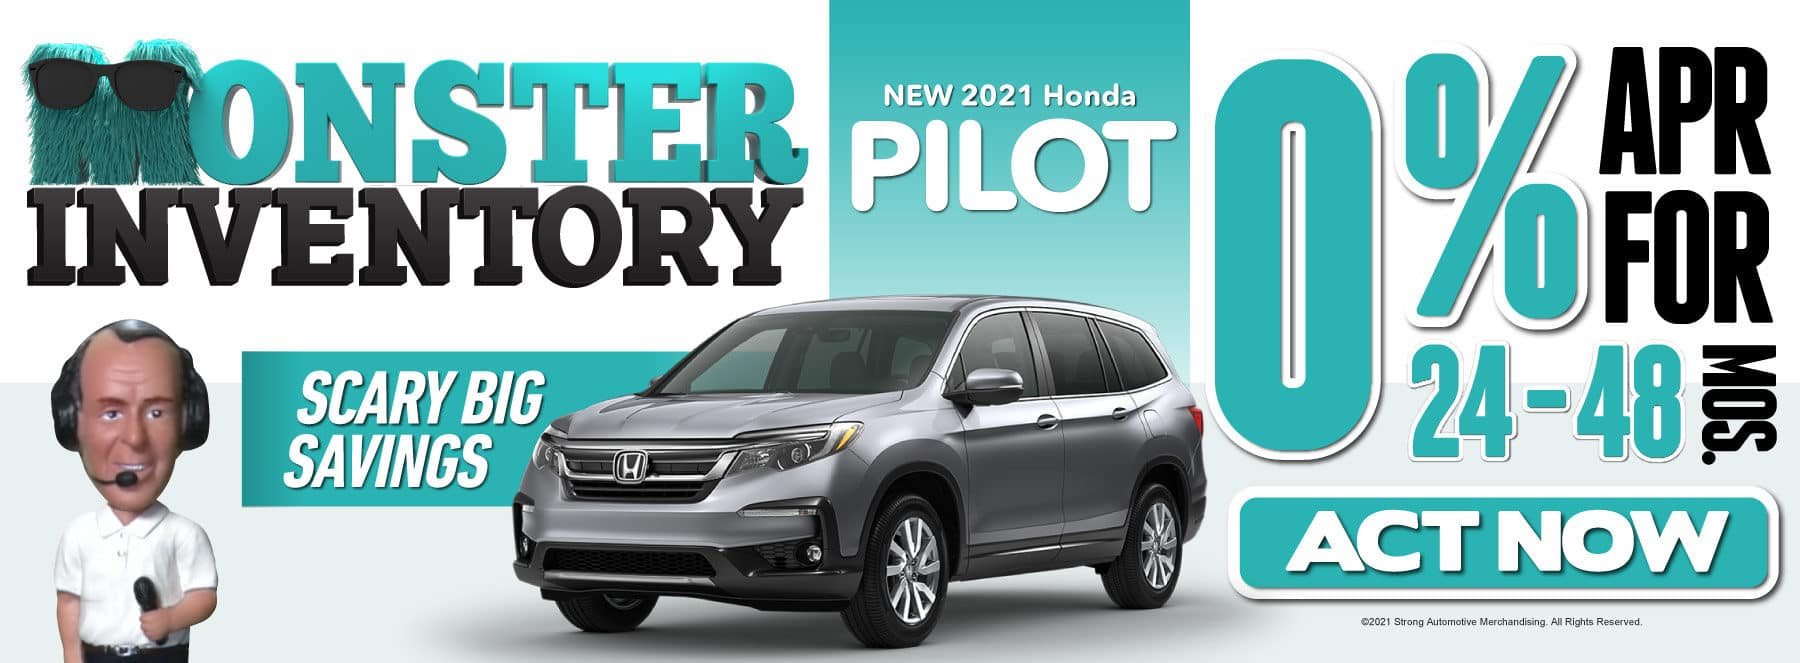 New 2021 Honda Pilot - 0% APR for 24-48 Months — ACT NOW